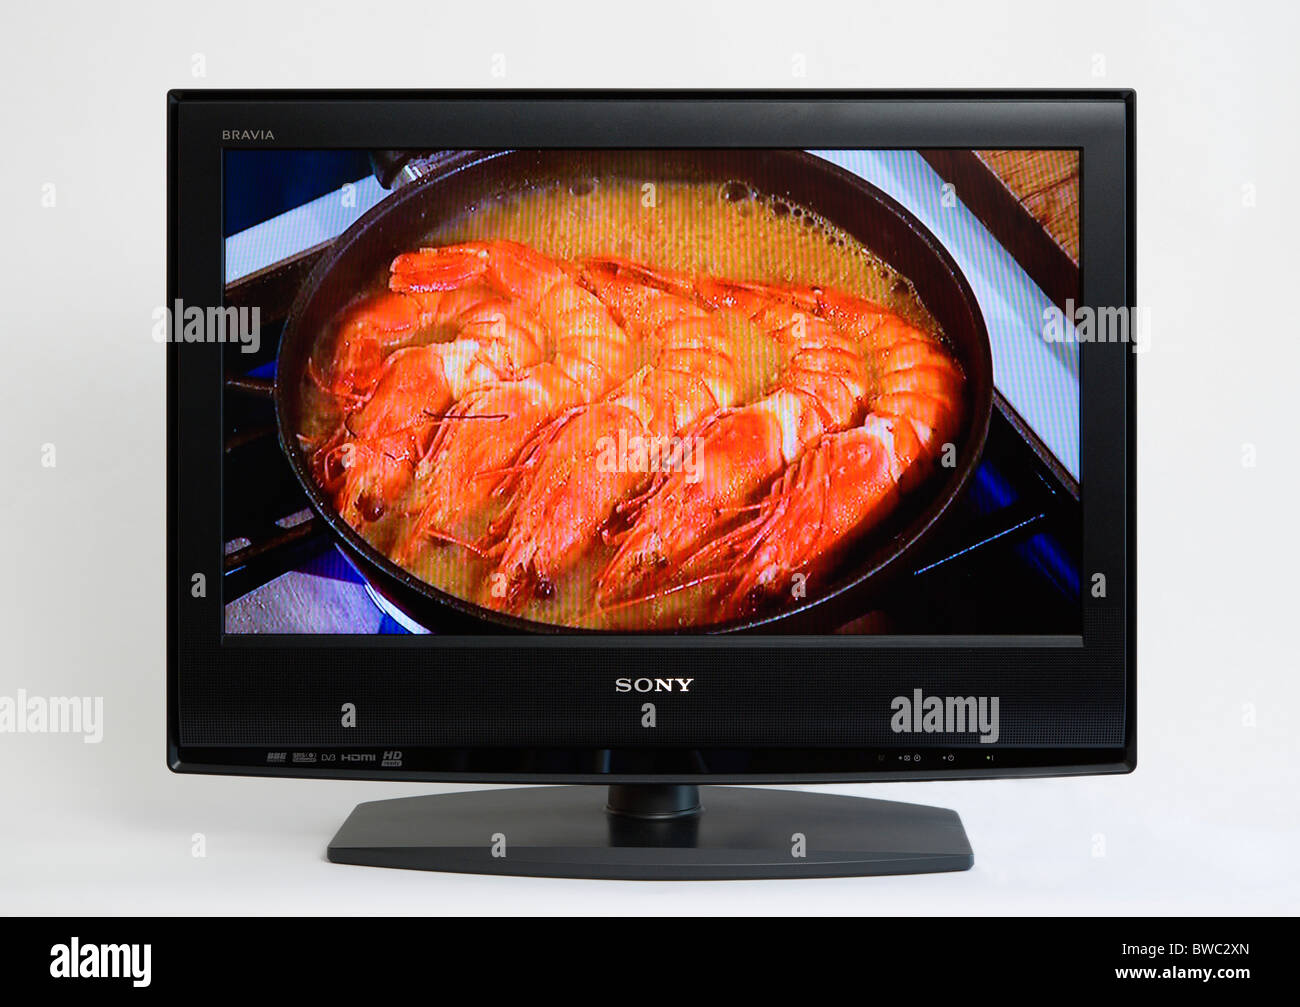 Communications, Media, Television, Sony Bravia Wide Flat Screen LCD TV on a white background - Stock Image